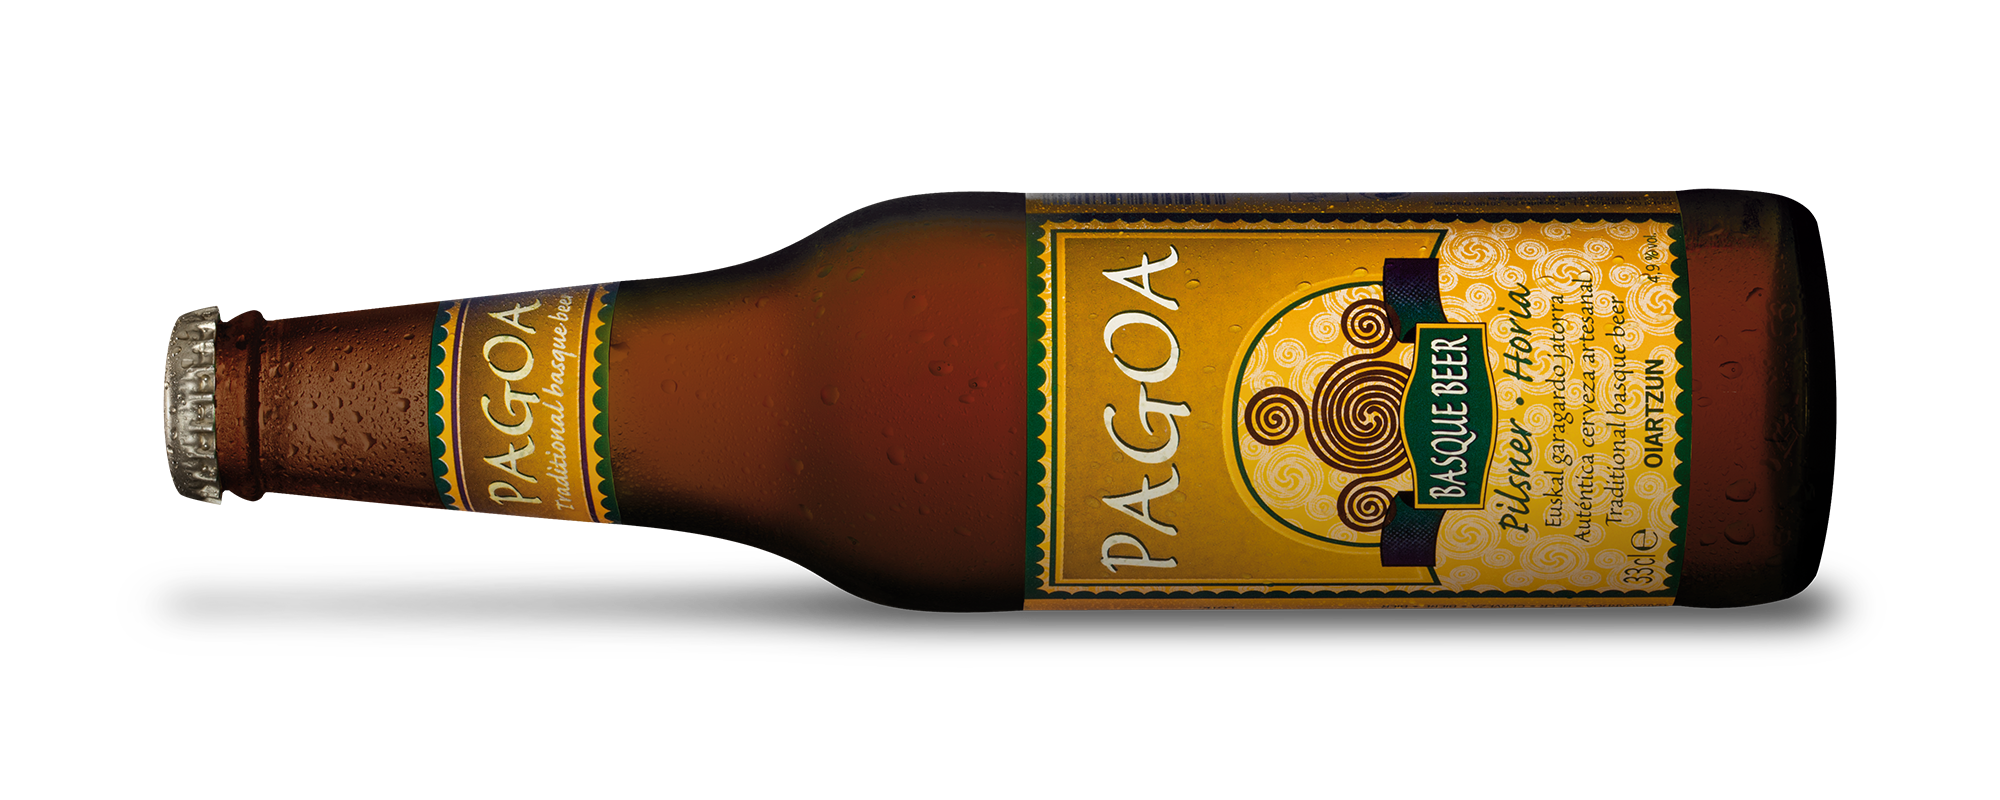 Pagoa Basque Beer Pilsner Horia